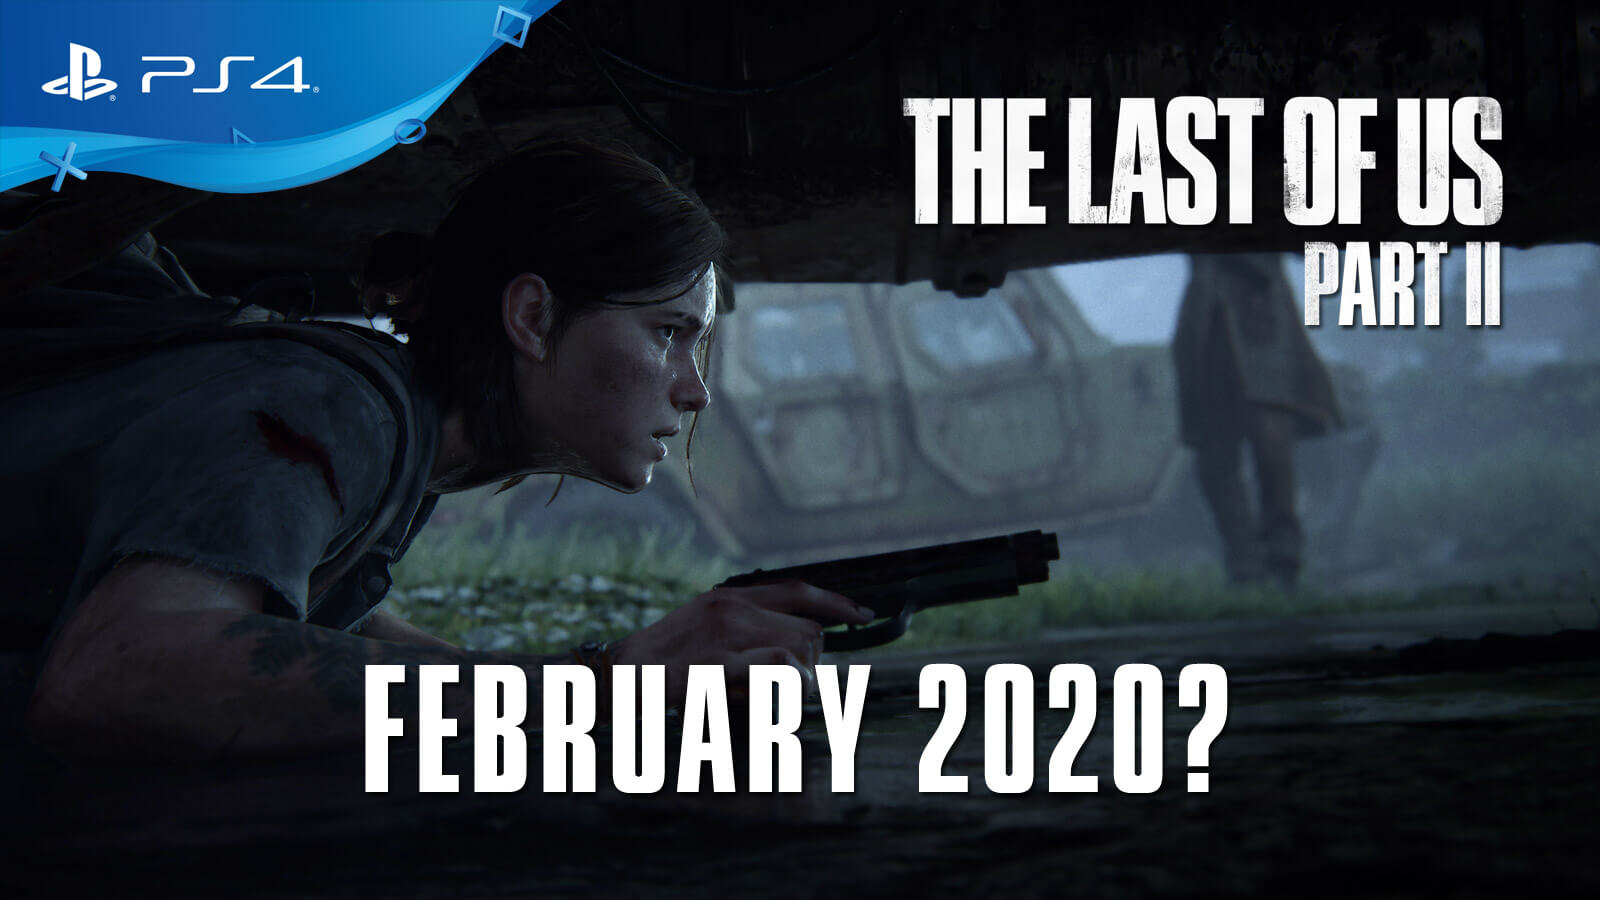 The Last of Us Part 2 Rumored to Release in February 2020 1600x900